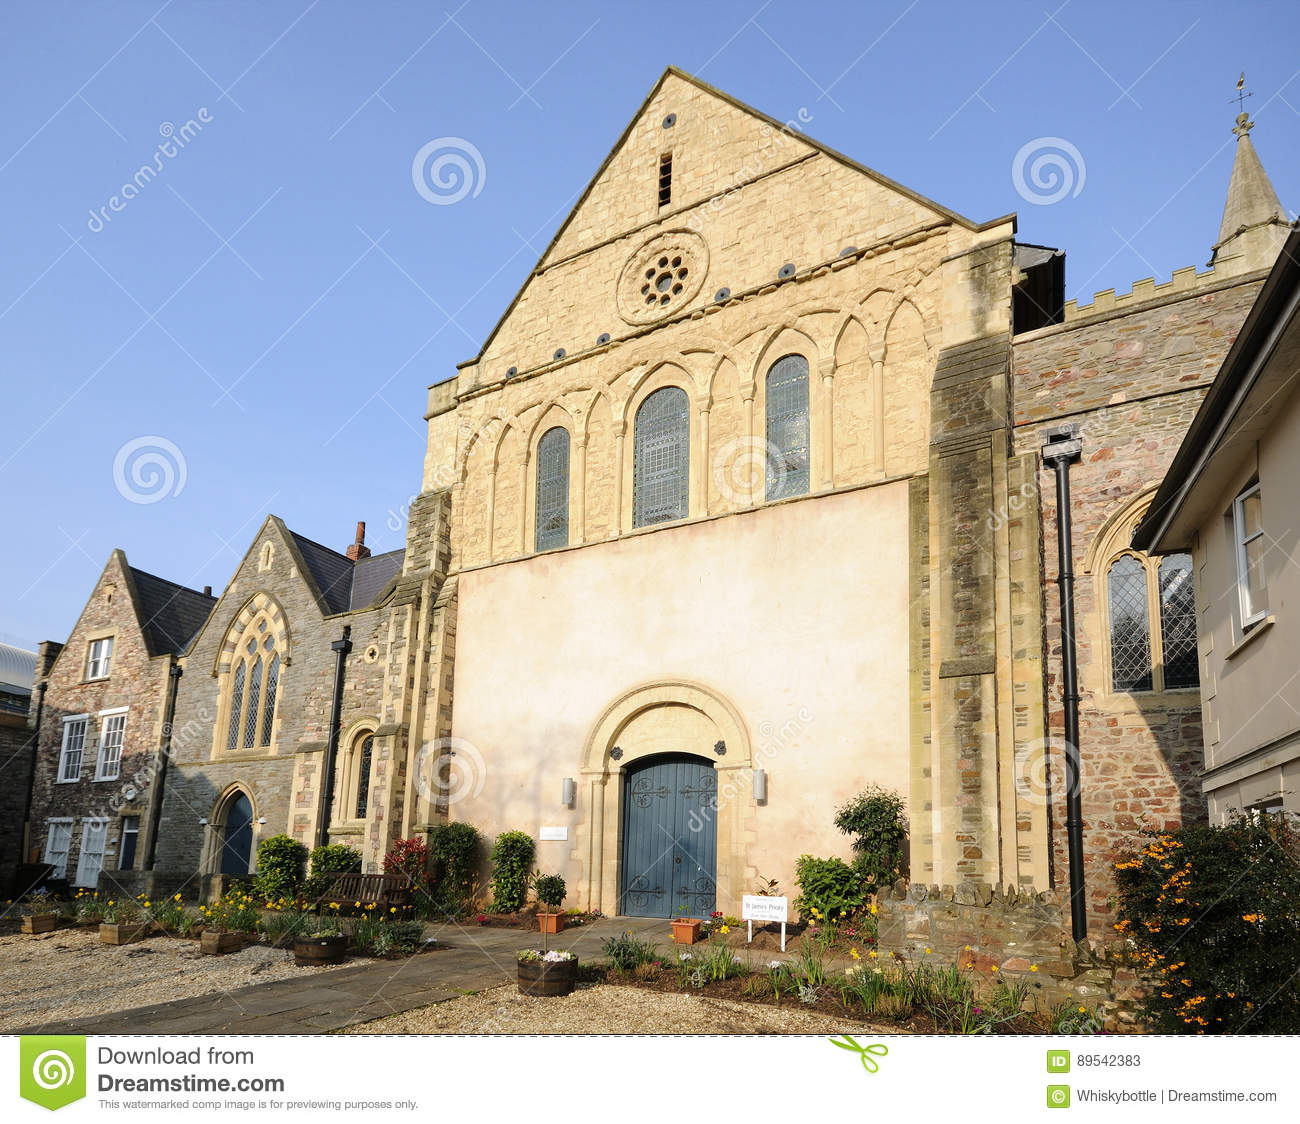 Priory Church of St James stock image  Image of england